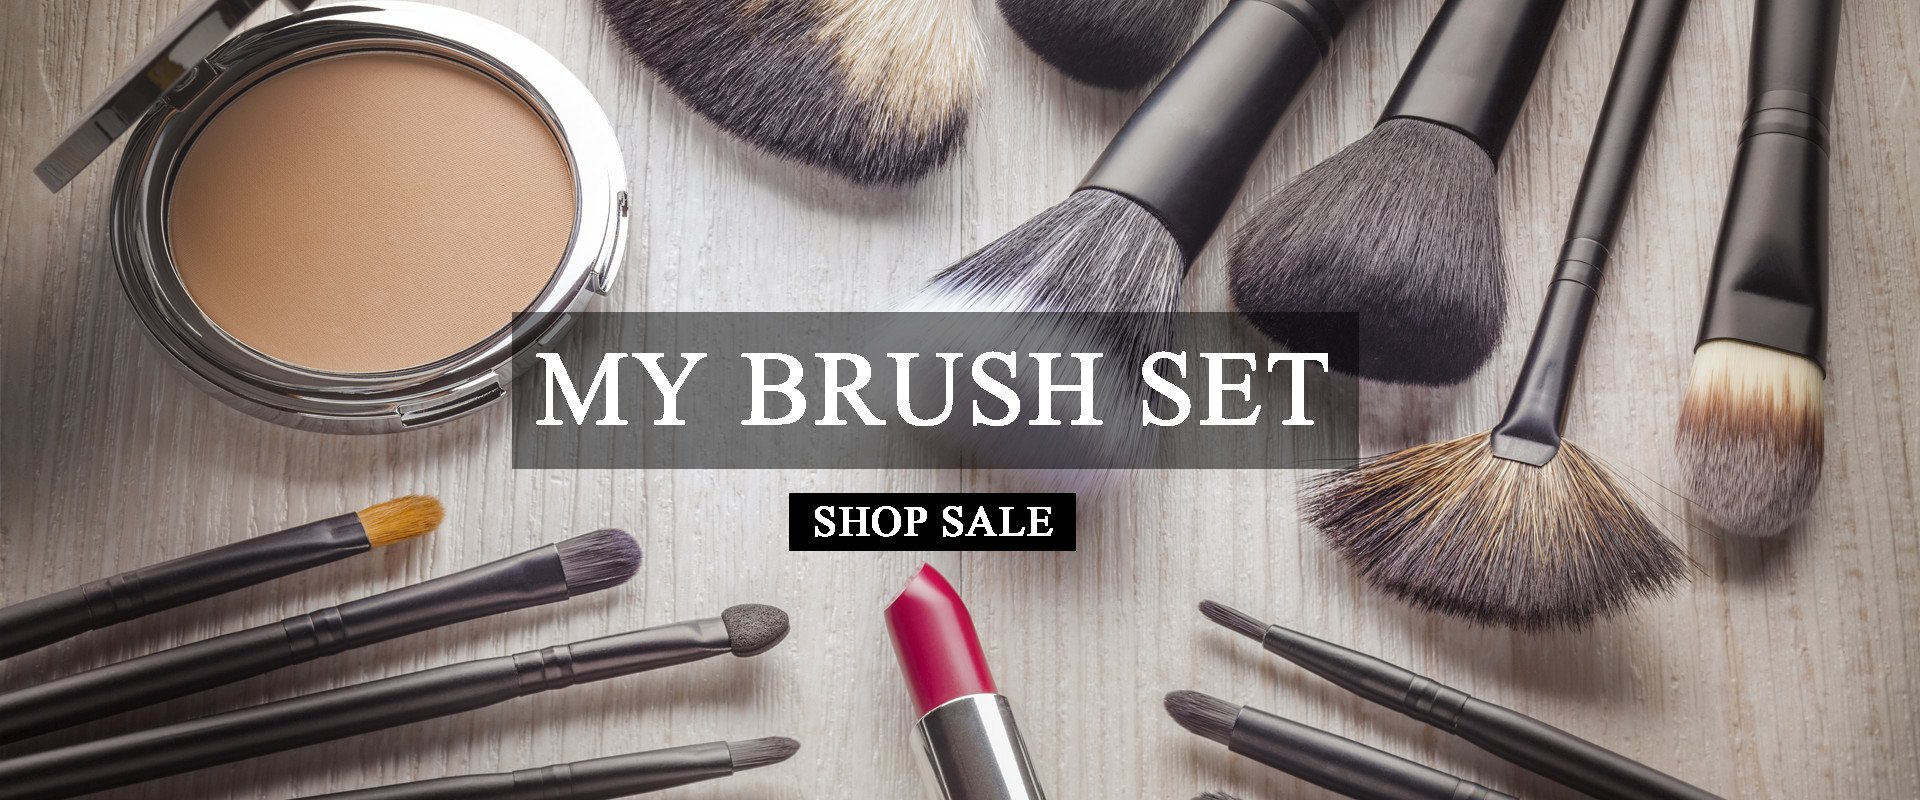 My Makeup Brush Set Back To School Pop-Up Event